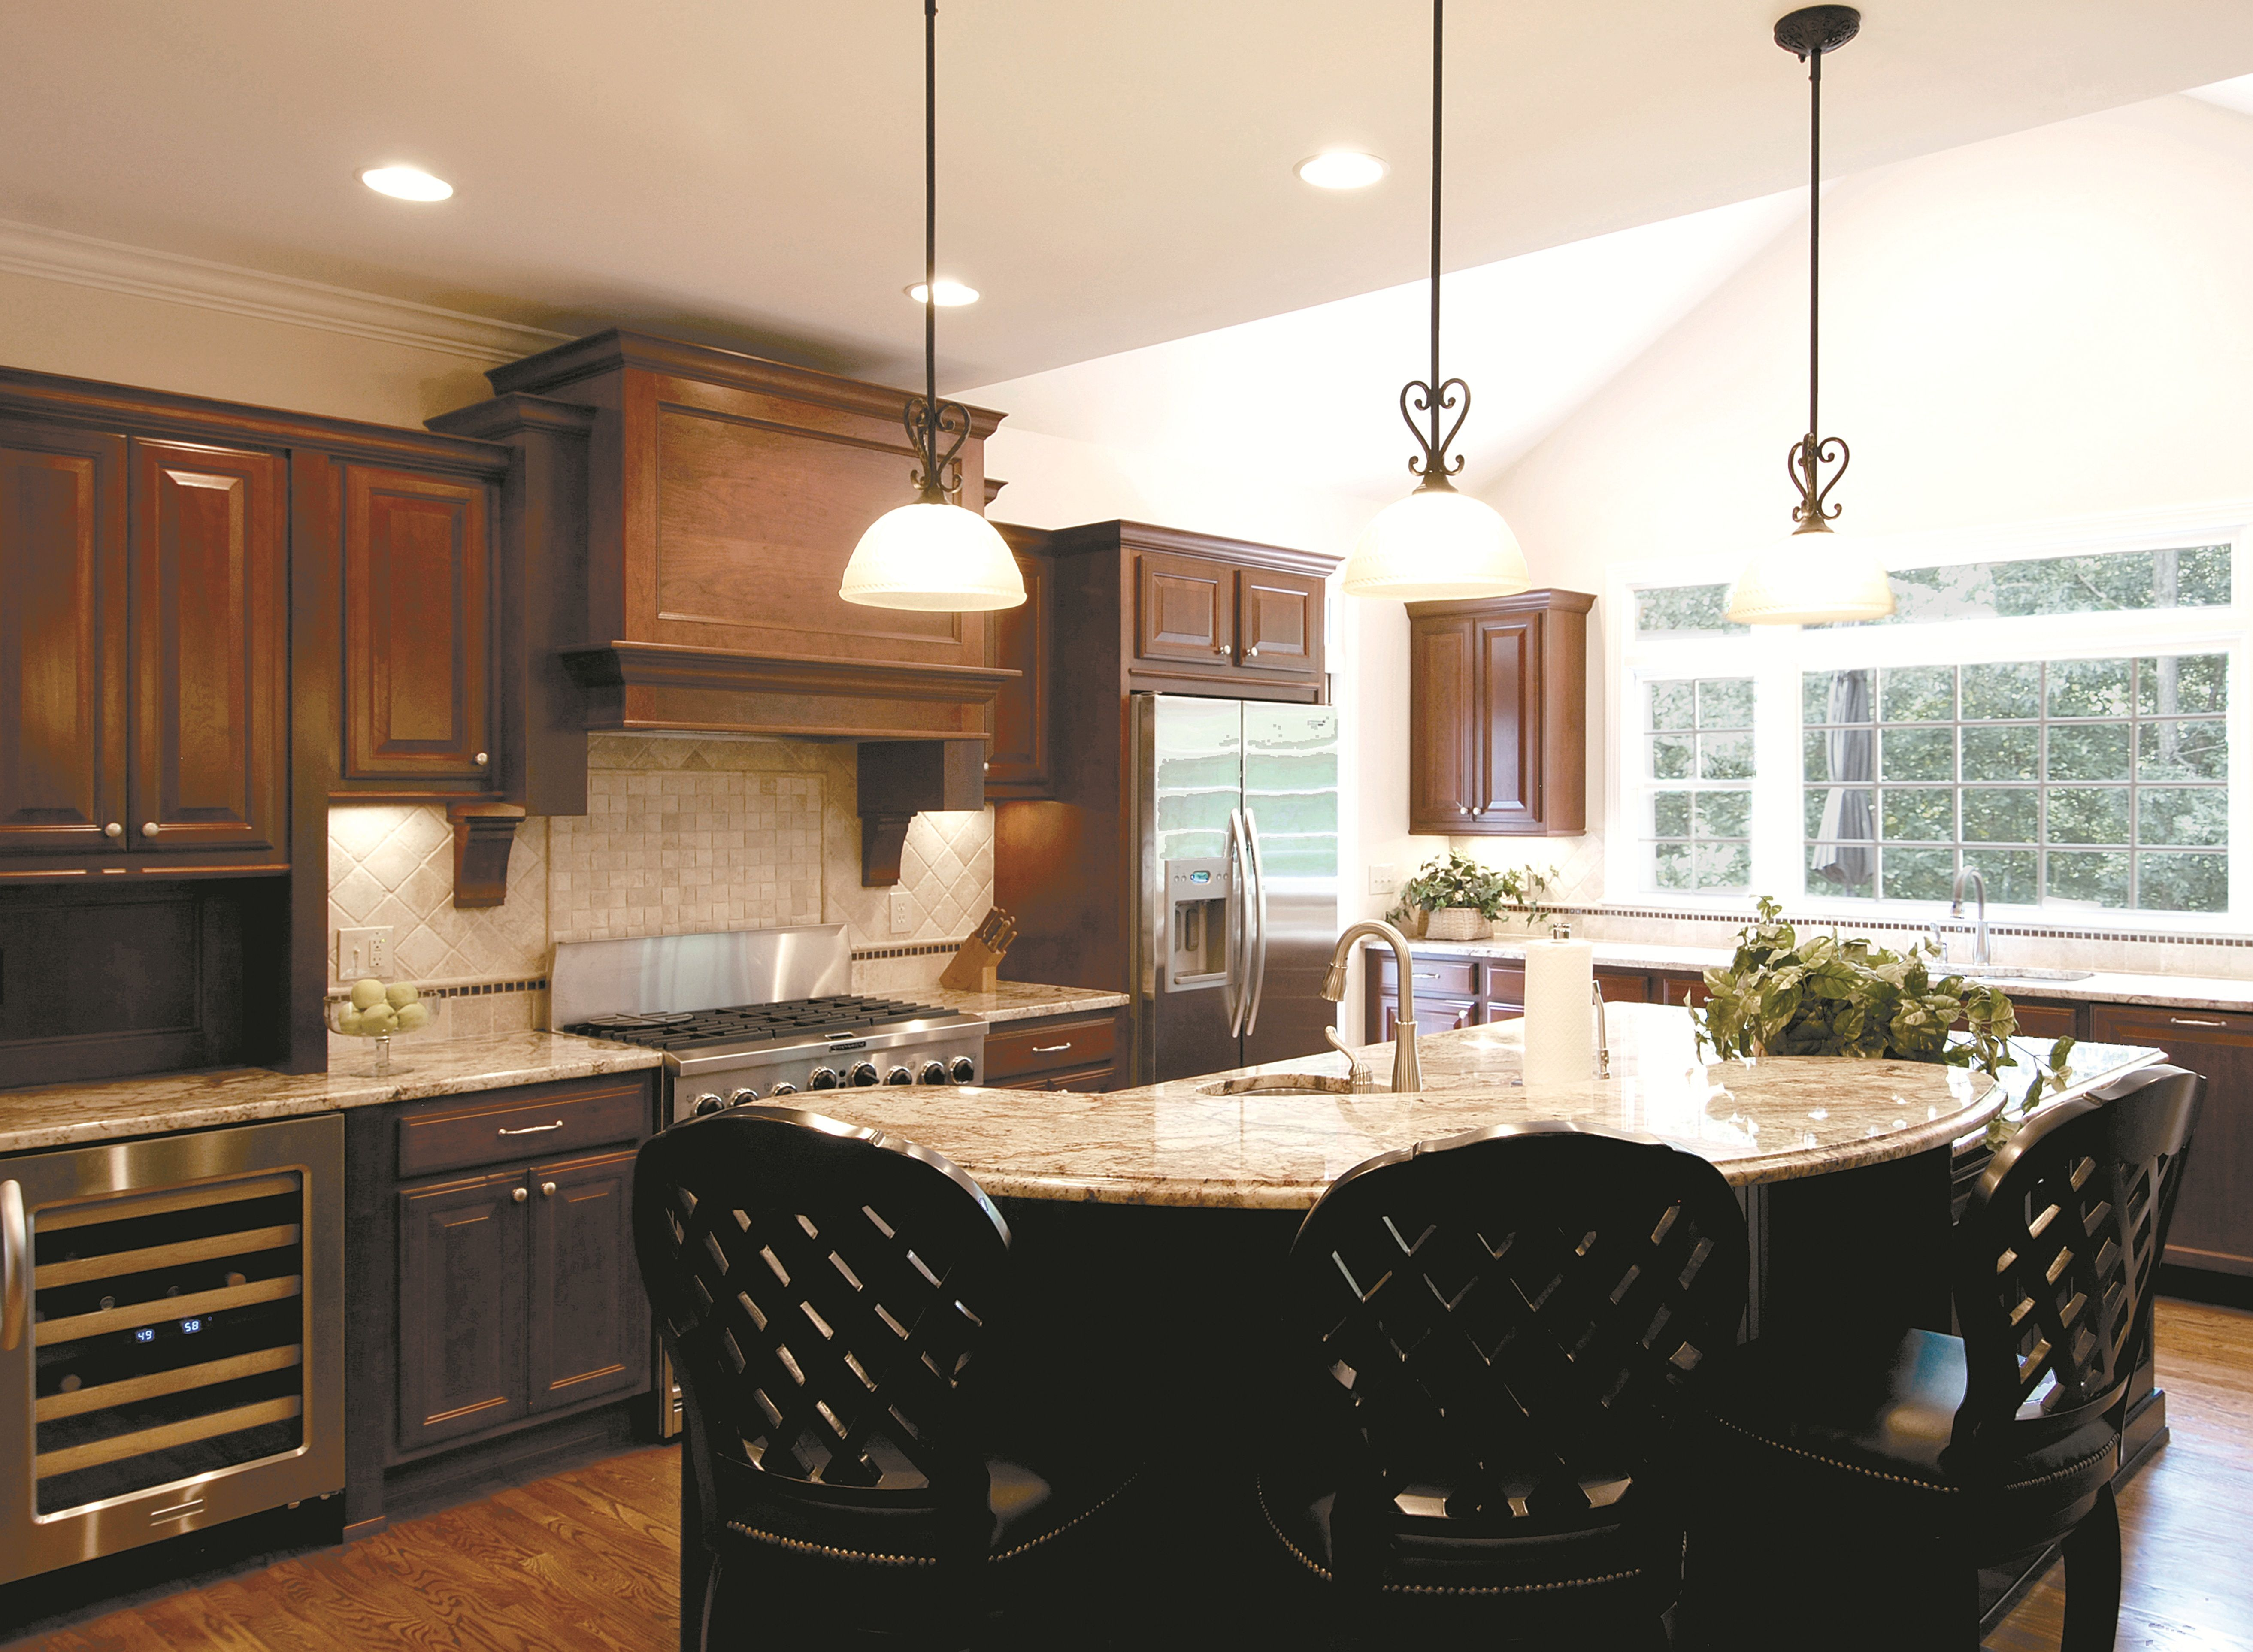 A Lovely Cherry Kitchen With An Island In The Center Is Great For Entertaining Or Breakfast Cabinets And Countertops Quality Kitchen Cabinets Wellborn Cabinets